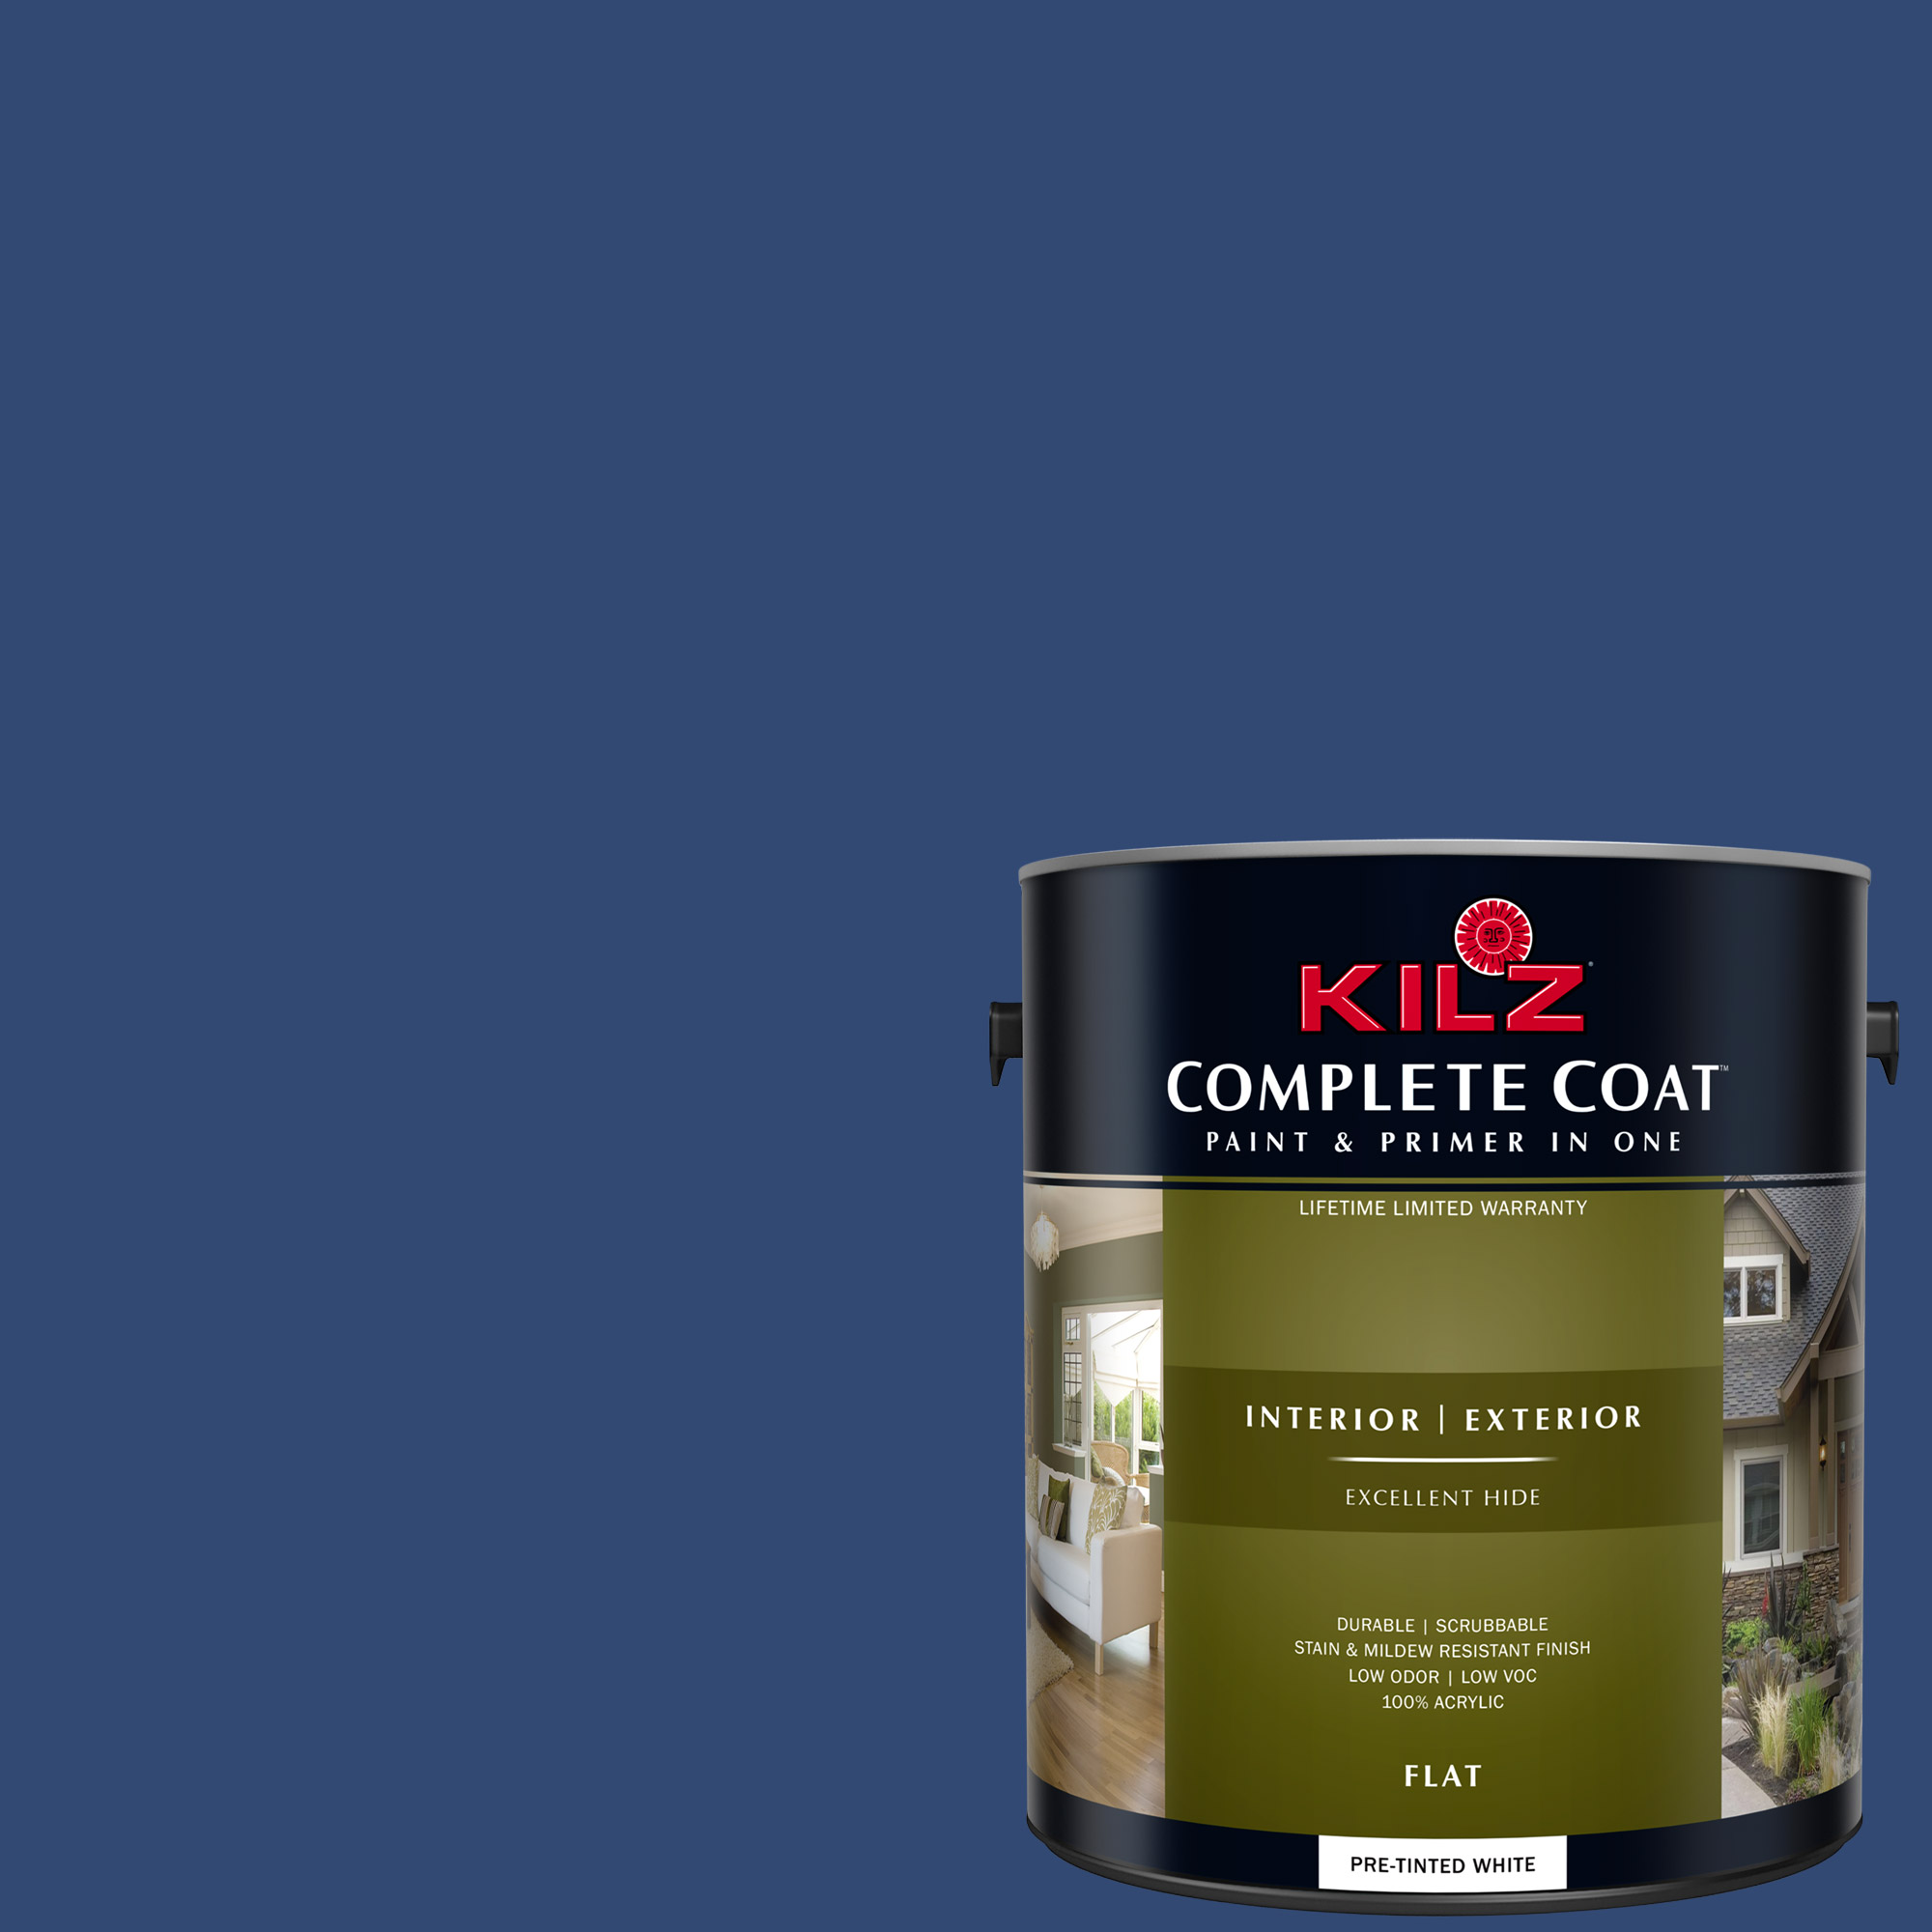 ... KILZ COMPLETE COAT Interior/Exterior Paint u0026 Primer in One #RH220 Indigo : best interior paint primer - zebratimes.com